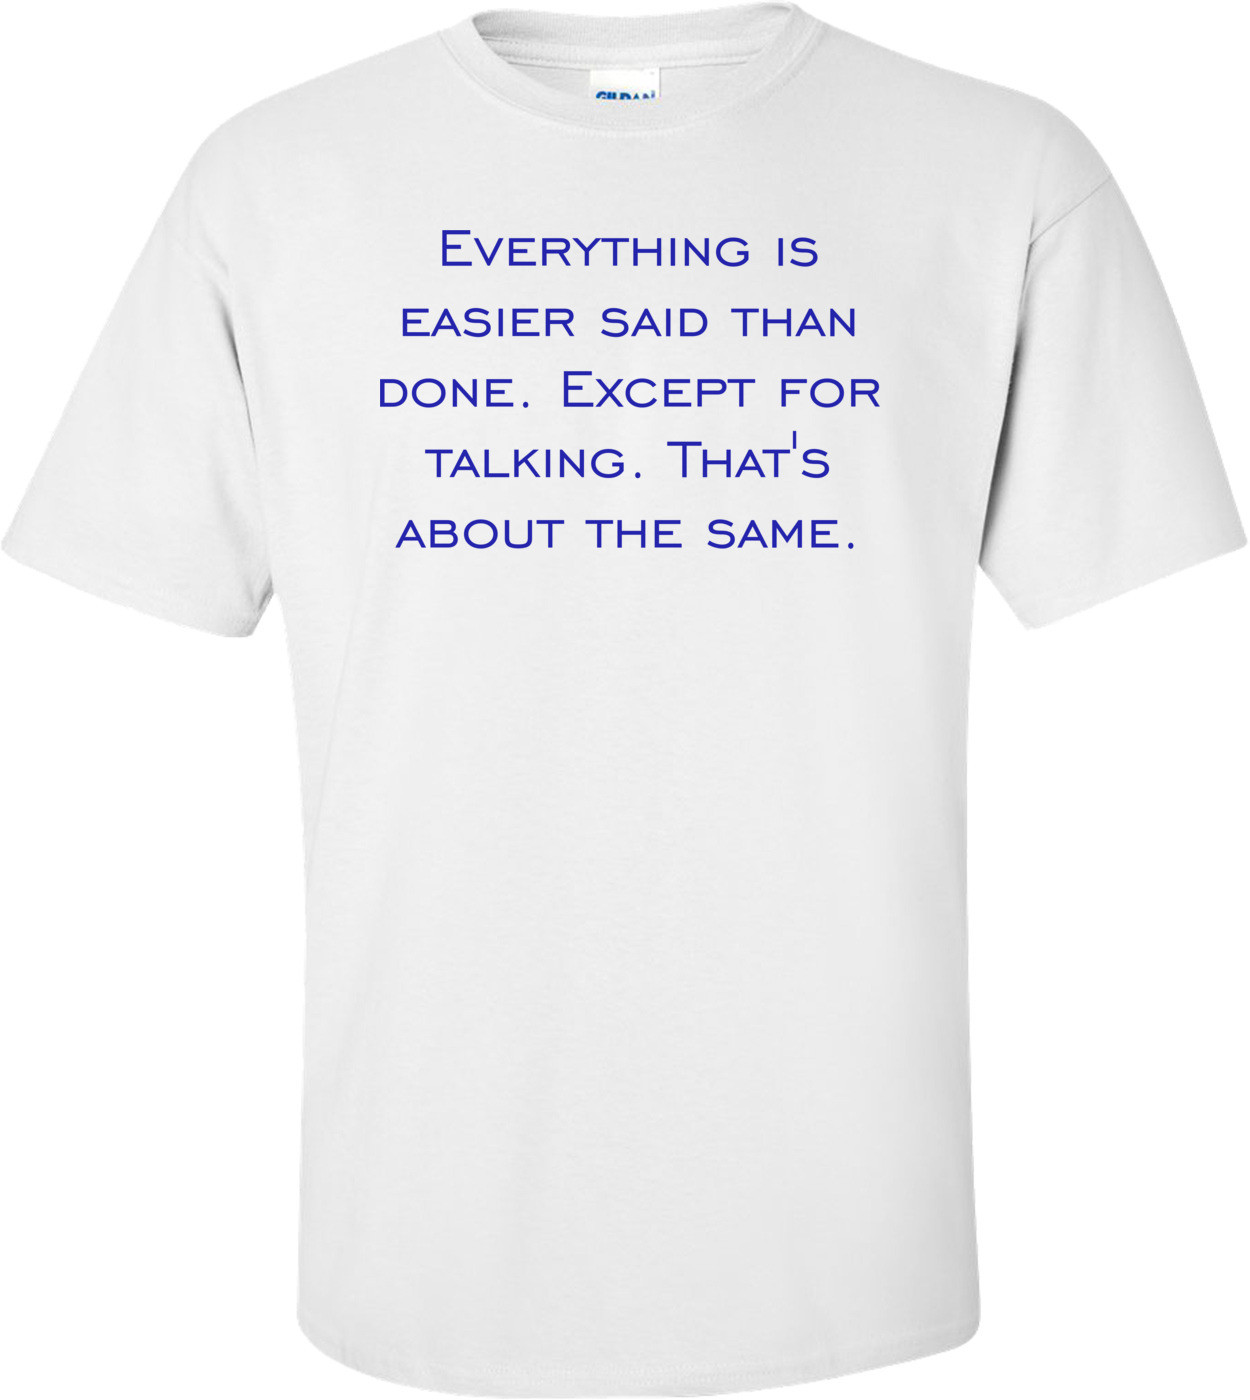 Everything is easier said than done. Except for talking. That's about the same. Shirt